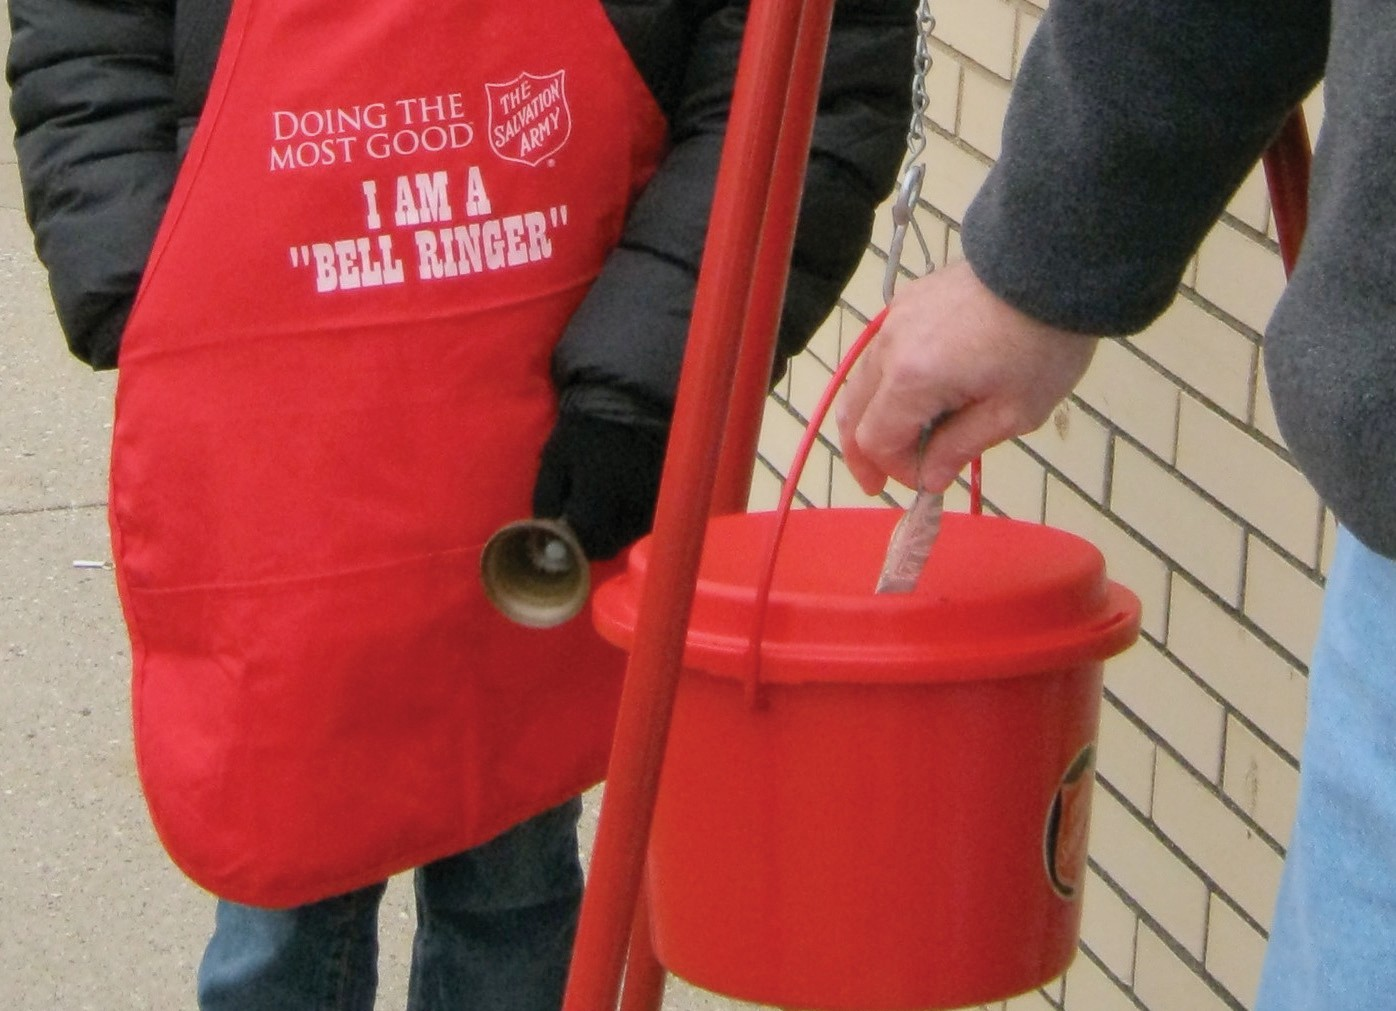 Salvation Army bell-ringers are instructed not to take money by hand from donors, but to allow them to deposit it directly into the collection kettle.